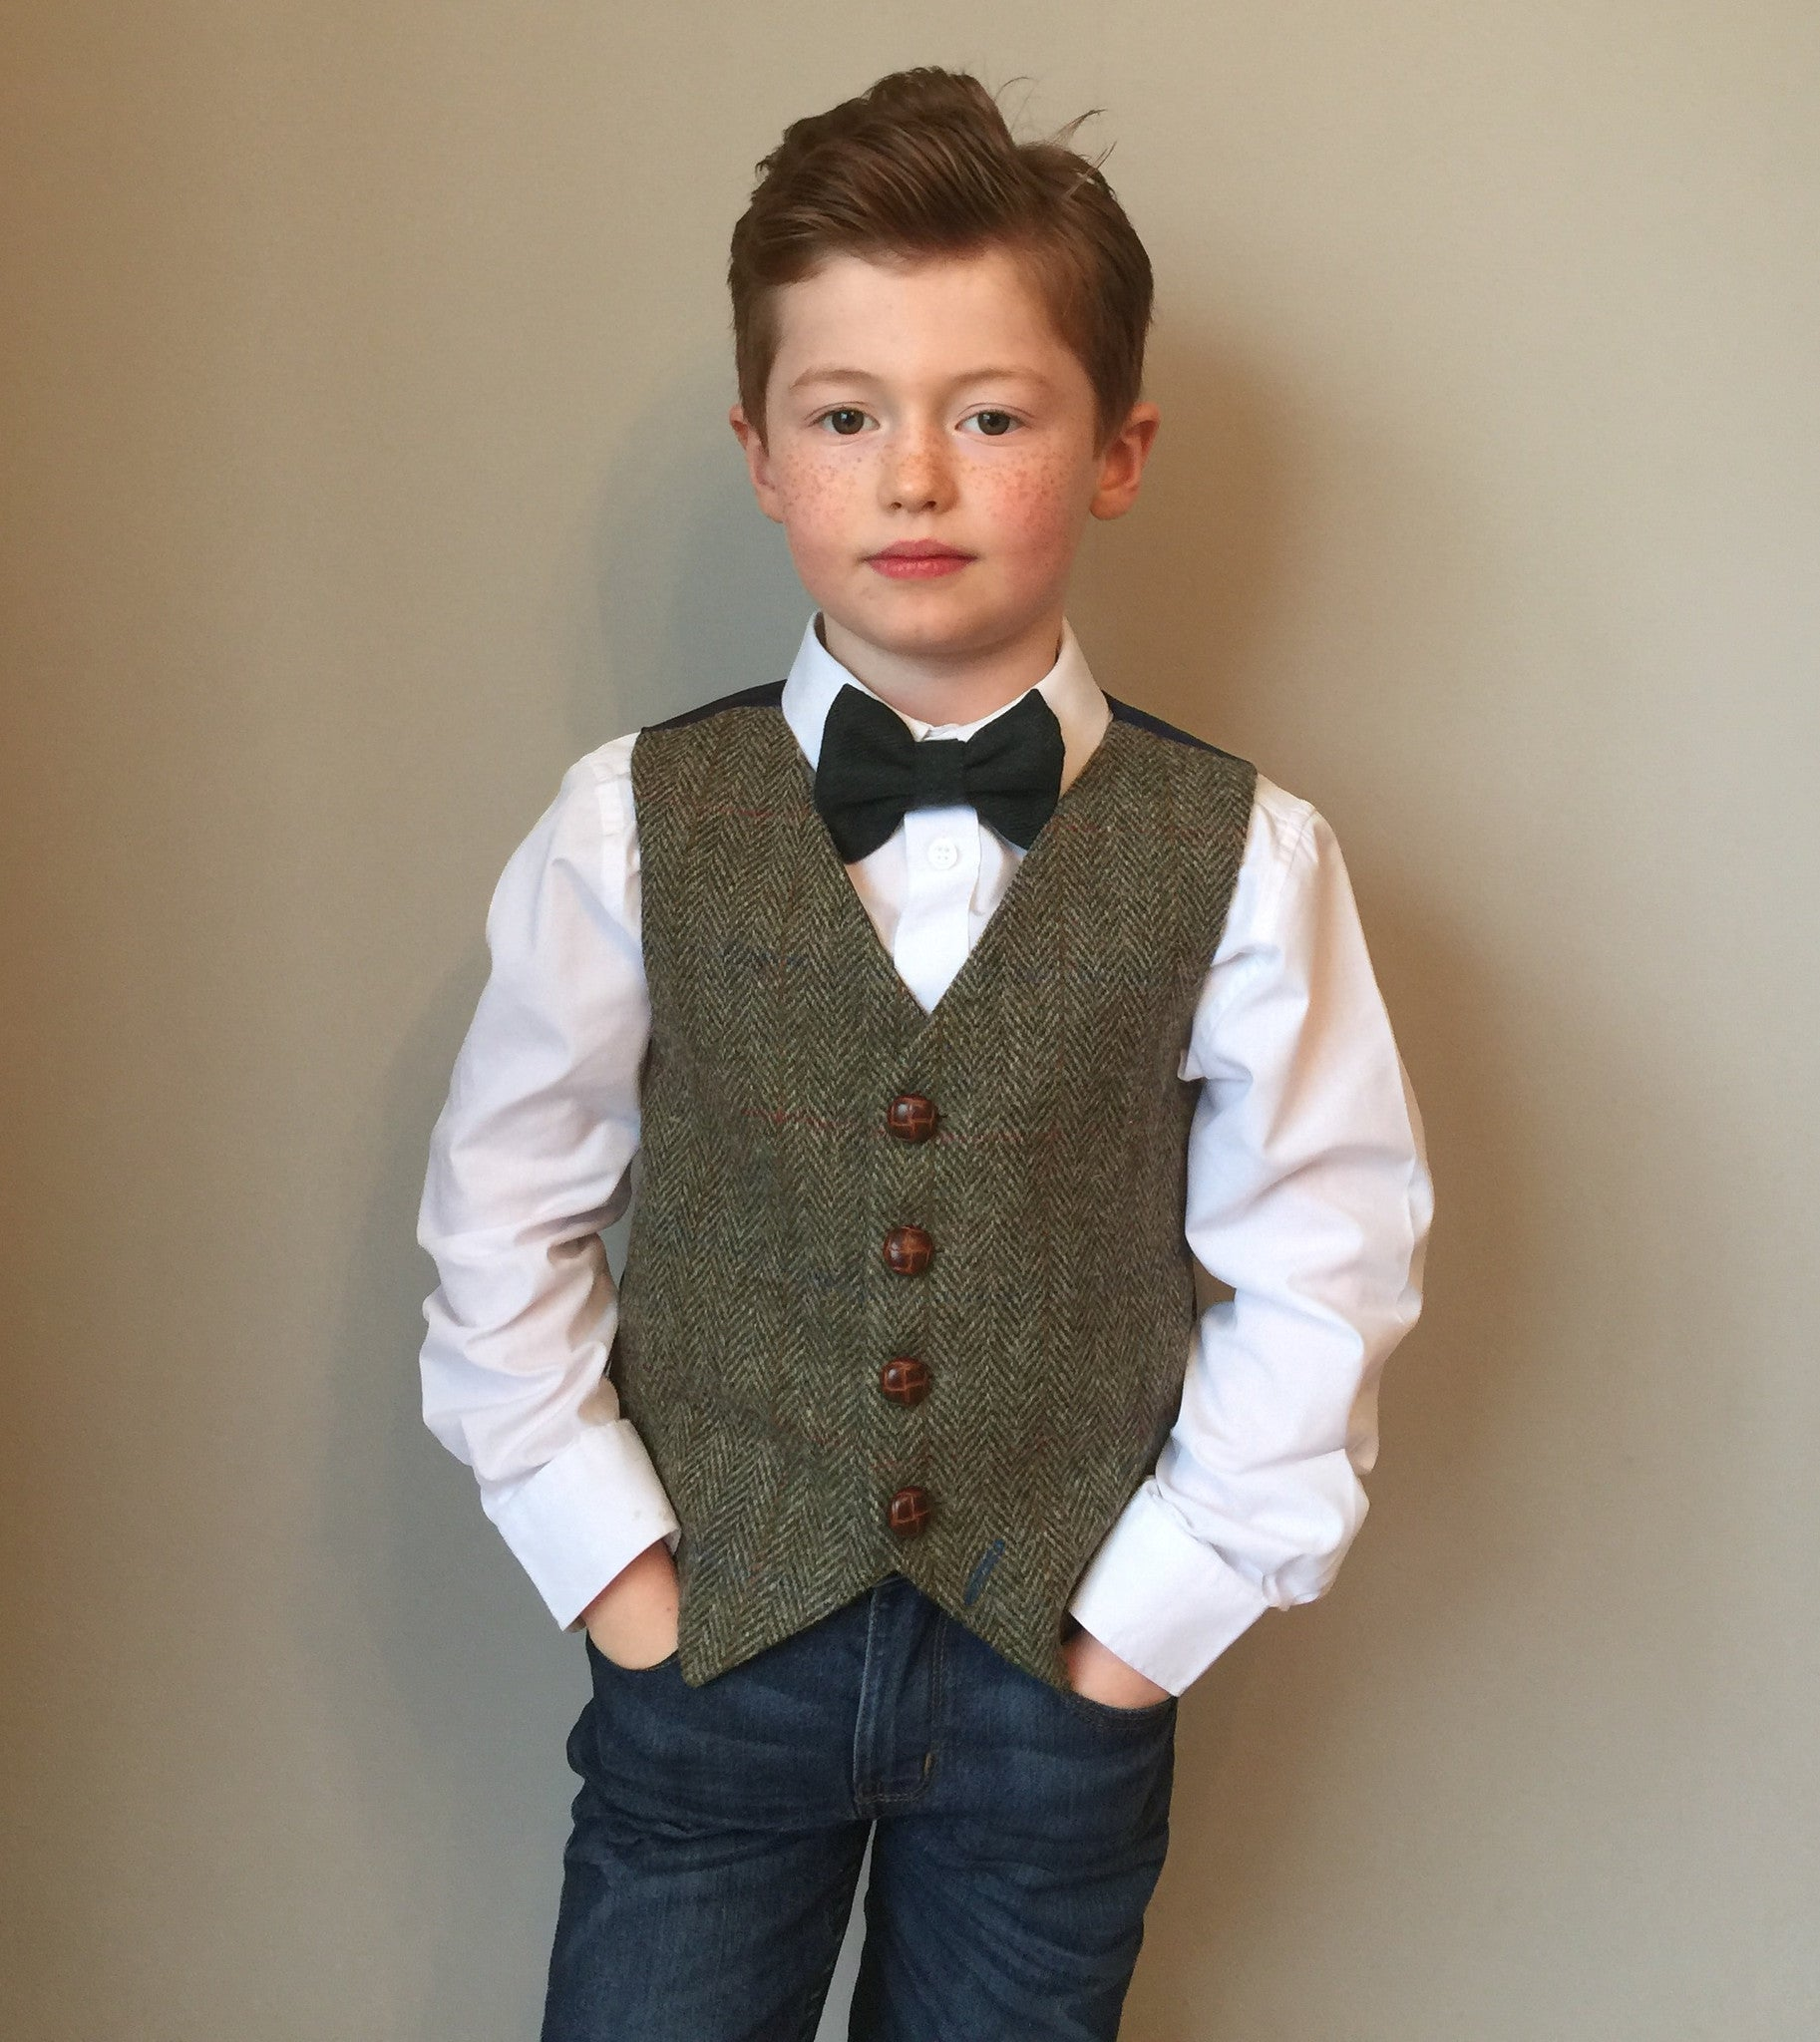 sample 'Green Gables' Boys sample waistcoat handmade in Harris Tweed